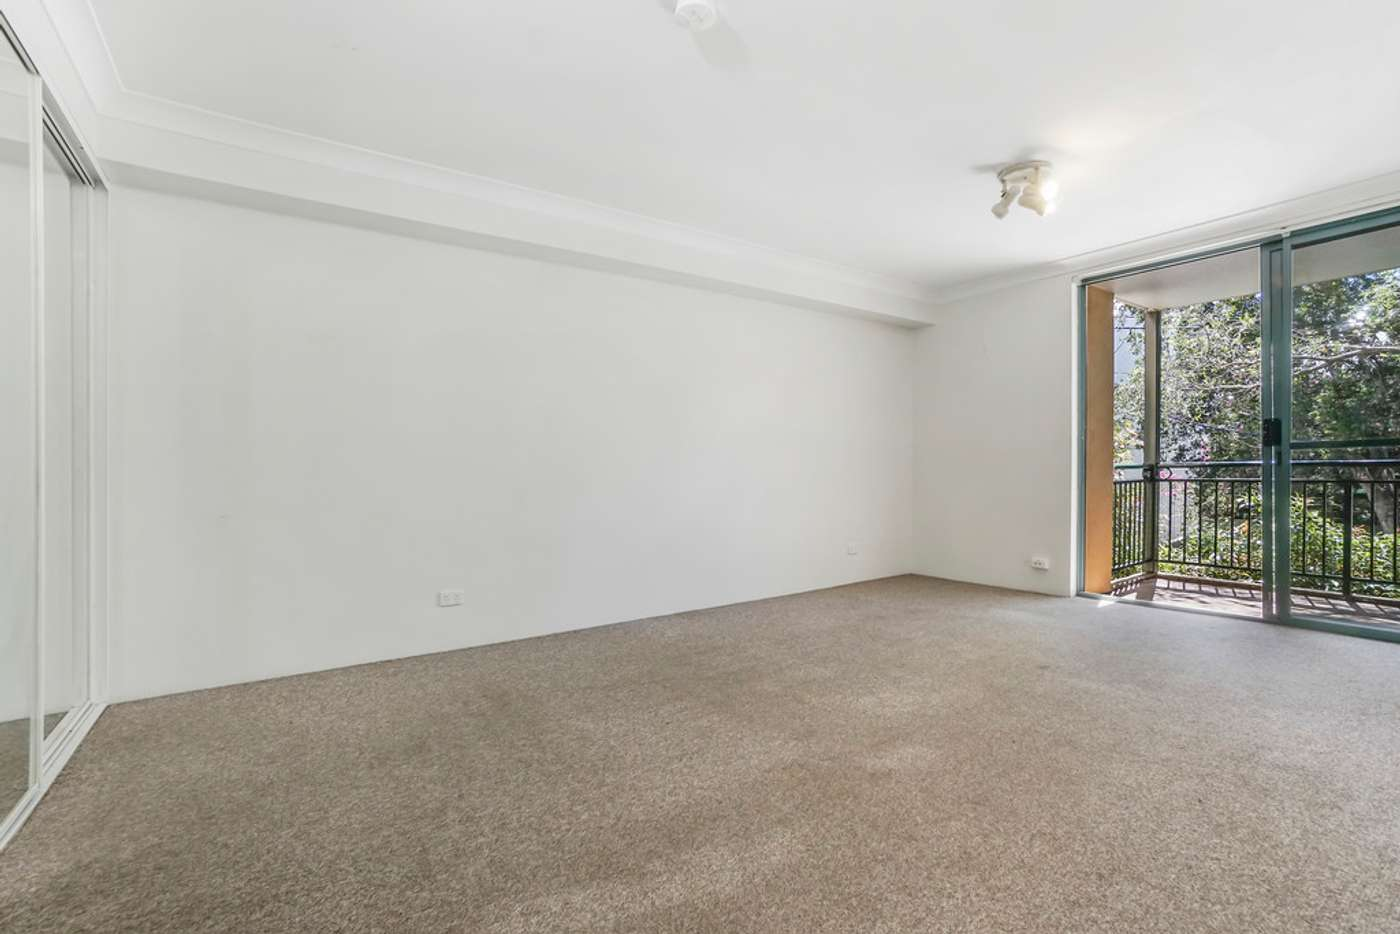 Main view of Homely studio listing, 29/1 Linthorpe Street, Newtown NSW 2042